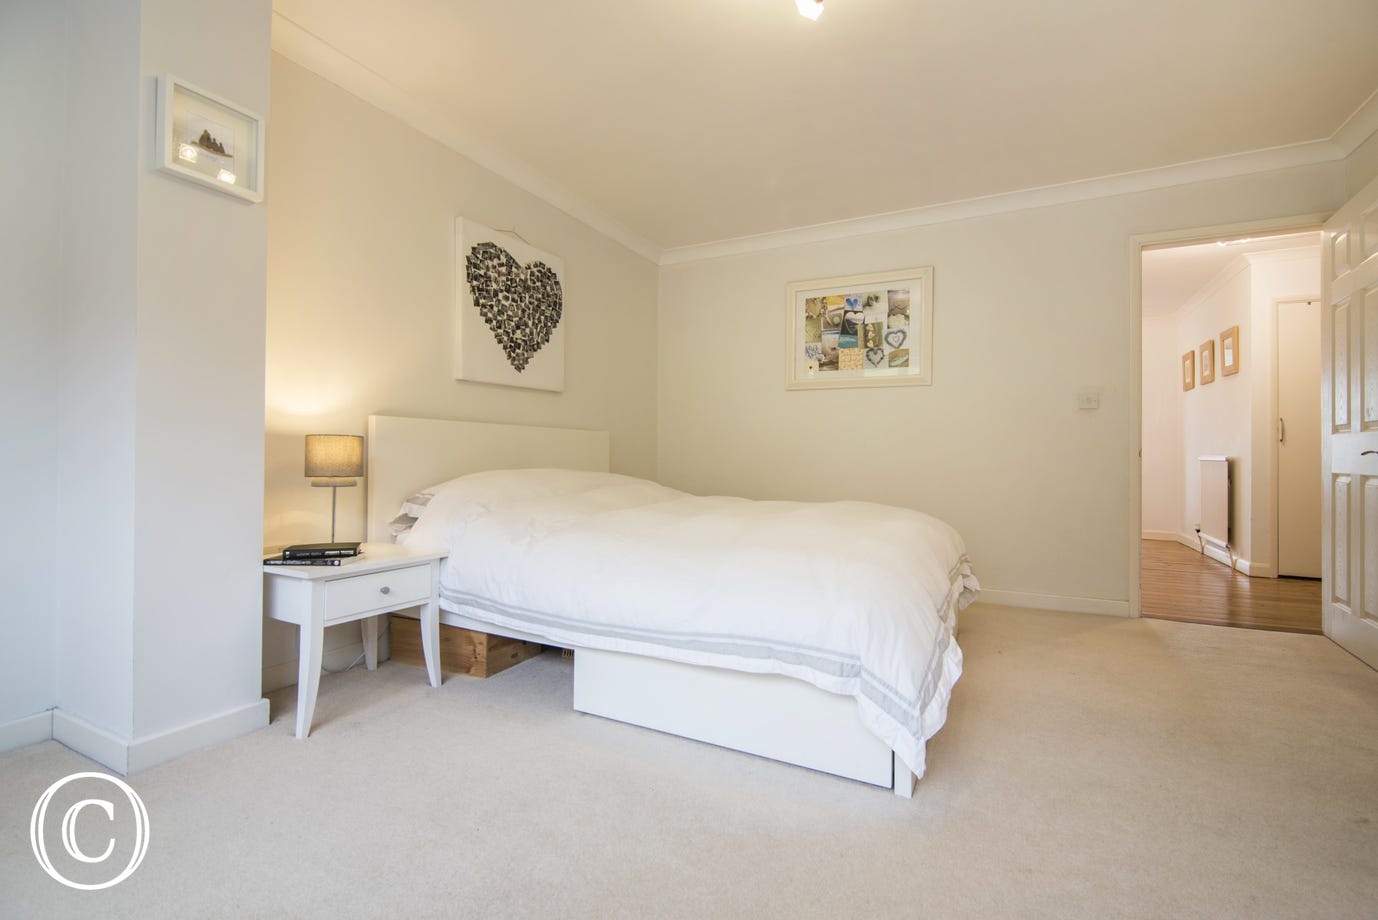 Spacious master bedroom en-suite with a oversized sized king bed with wardrobes and large mirror.